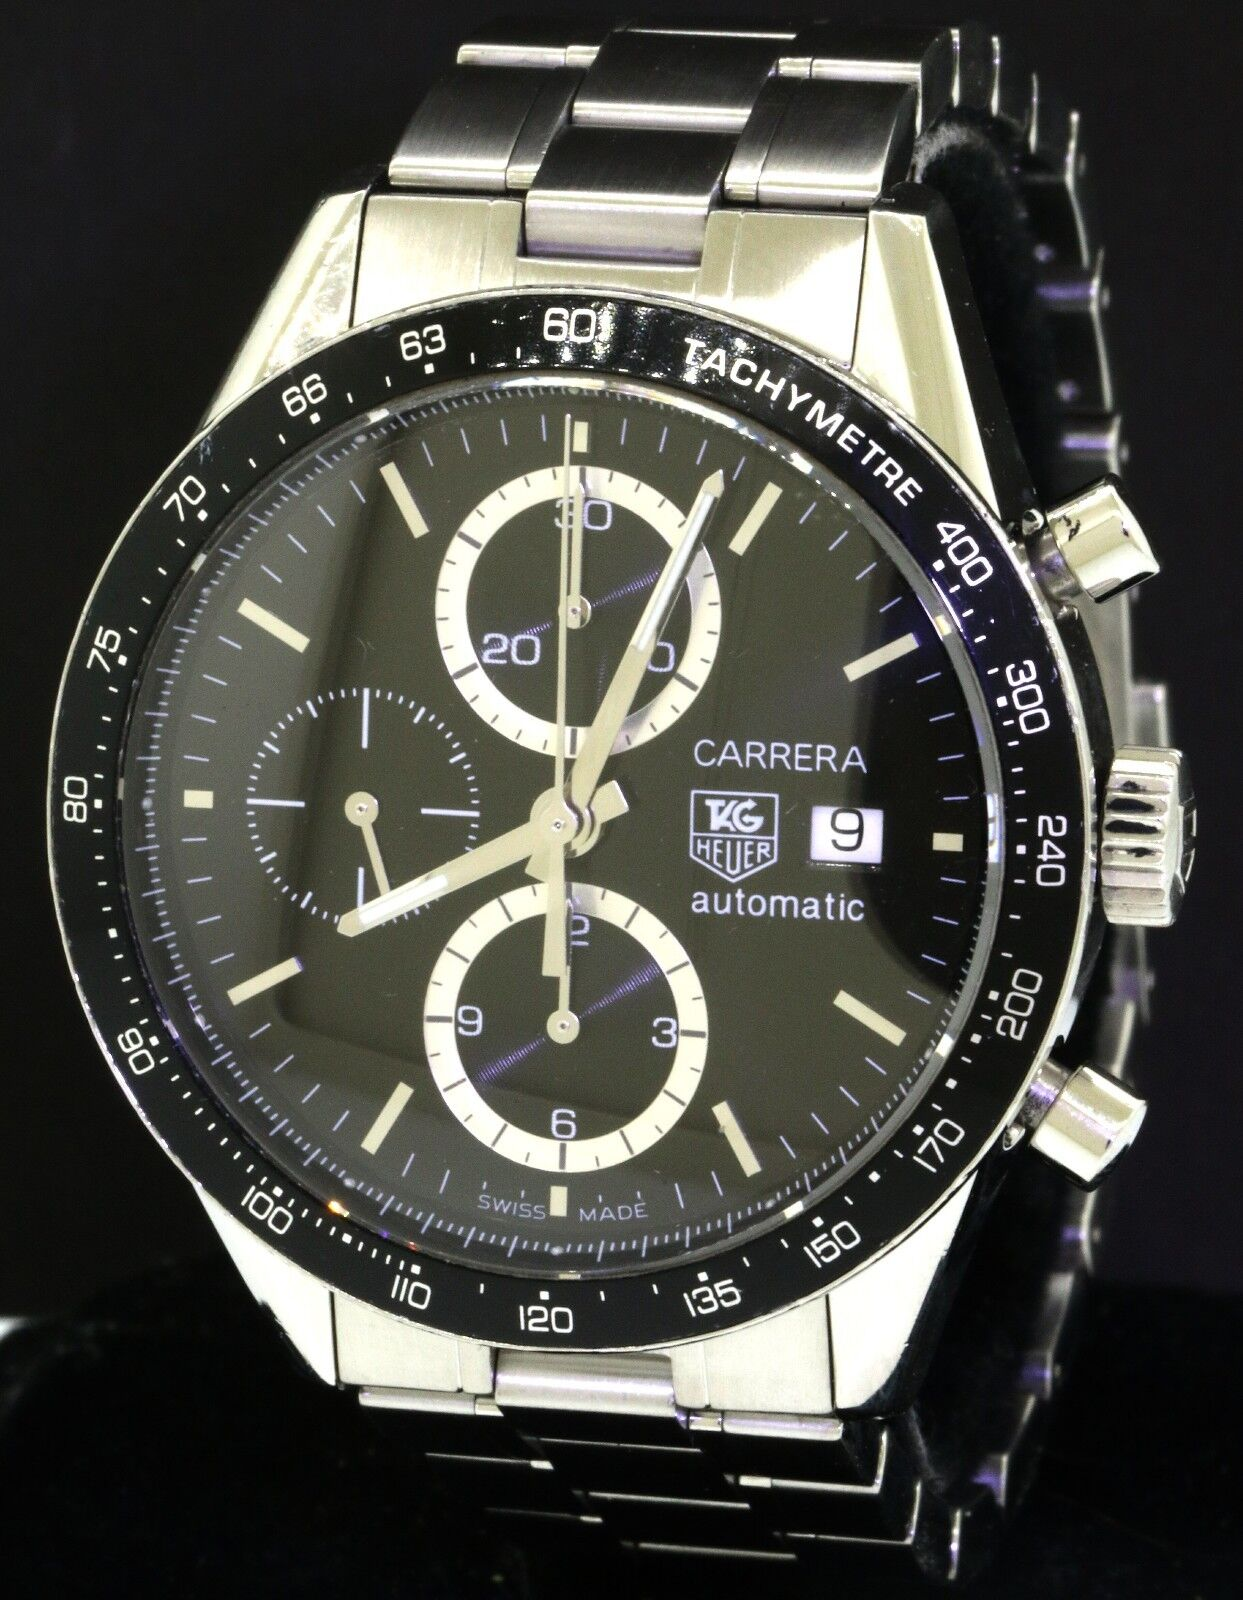 TAG Heuer Carrera high fashion SS automatic chronograph men's watch - watch picture 1